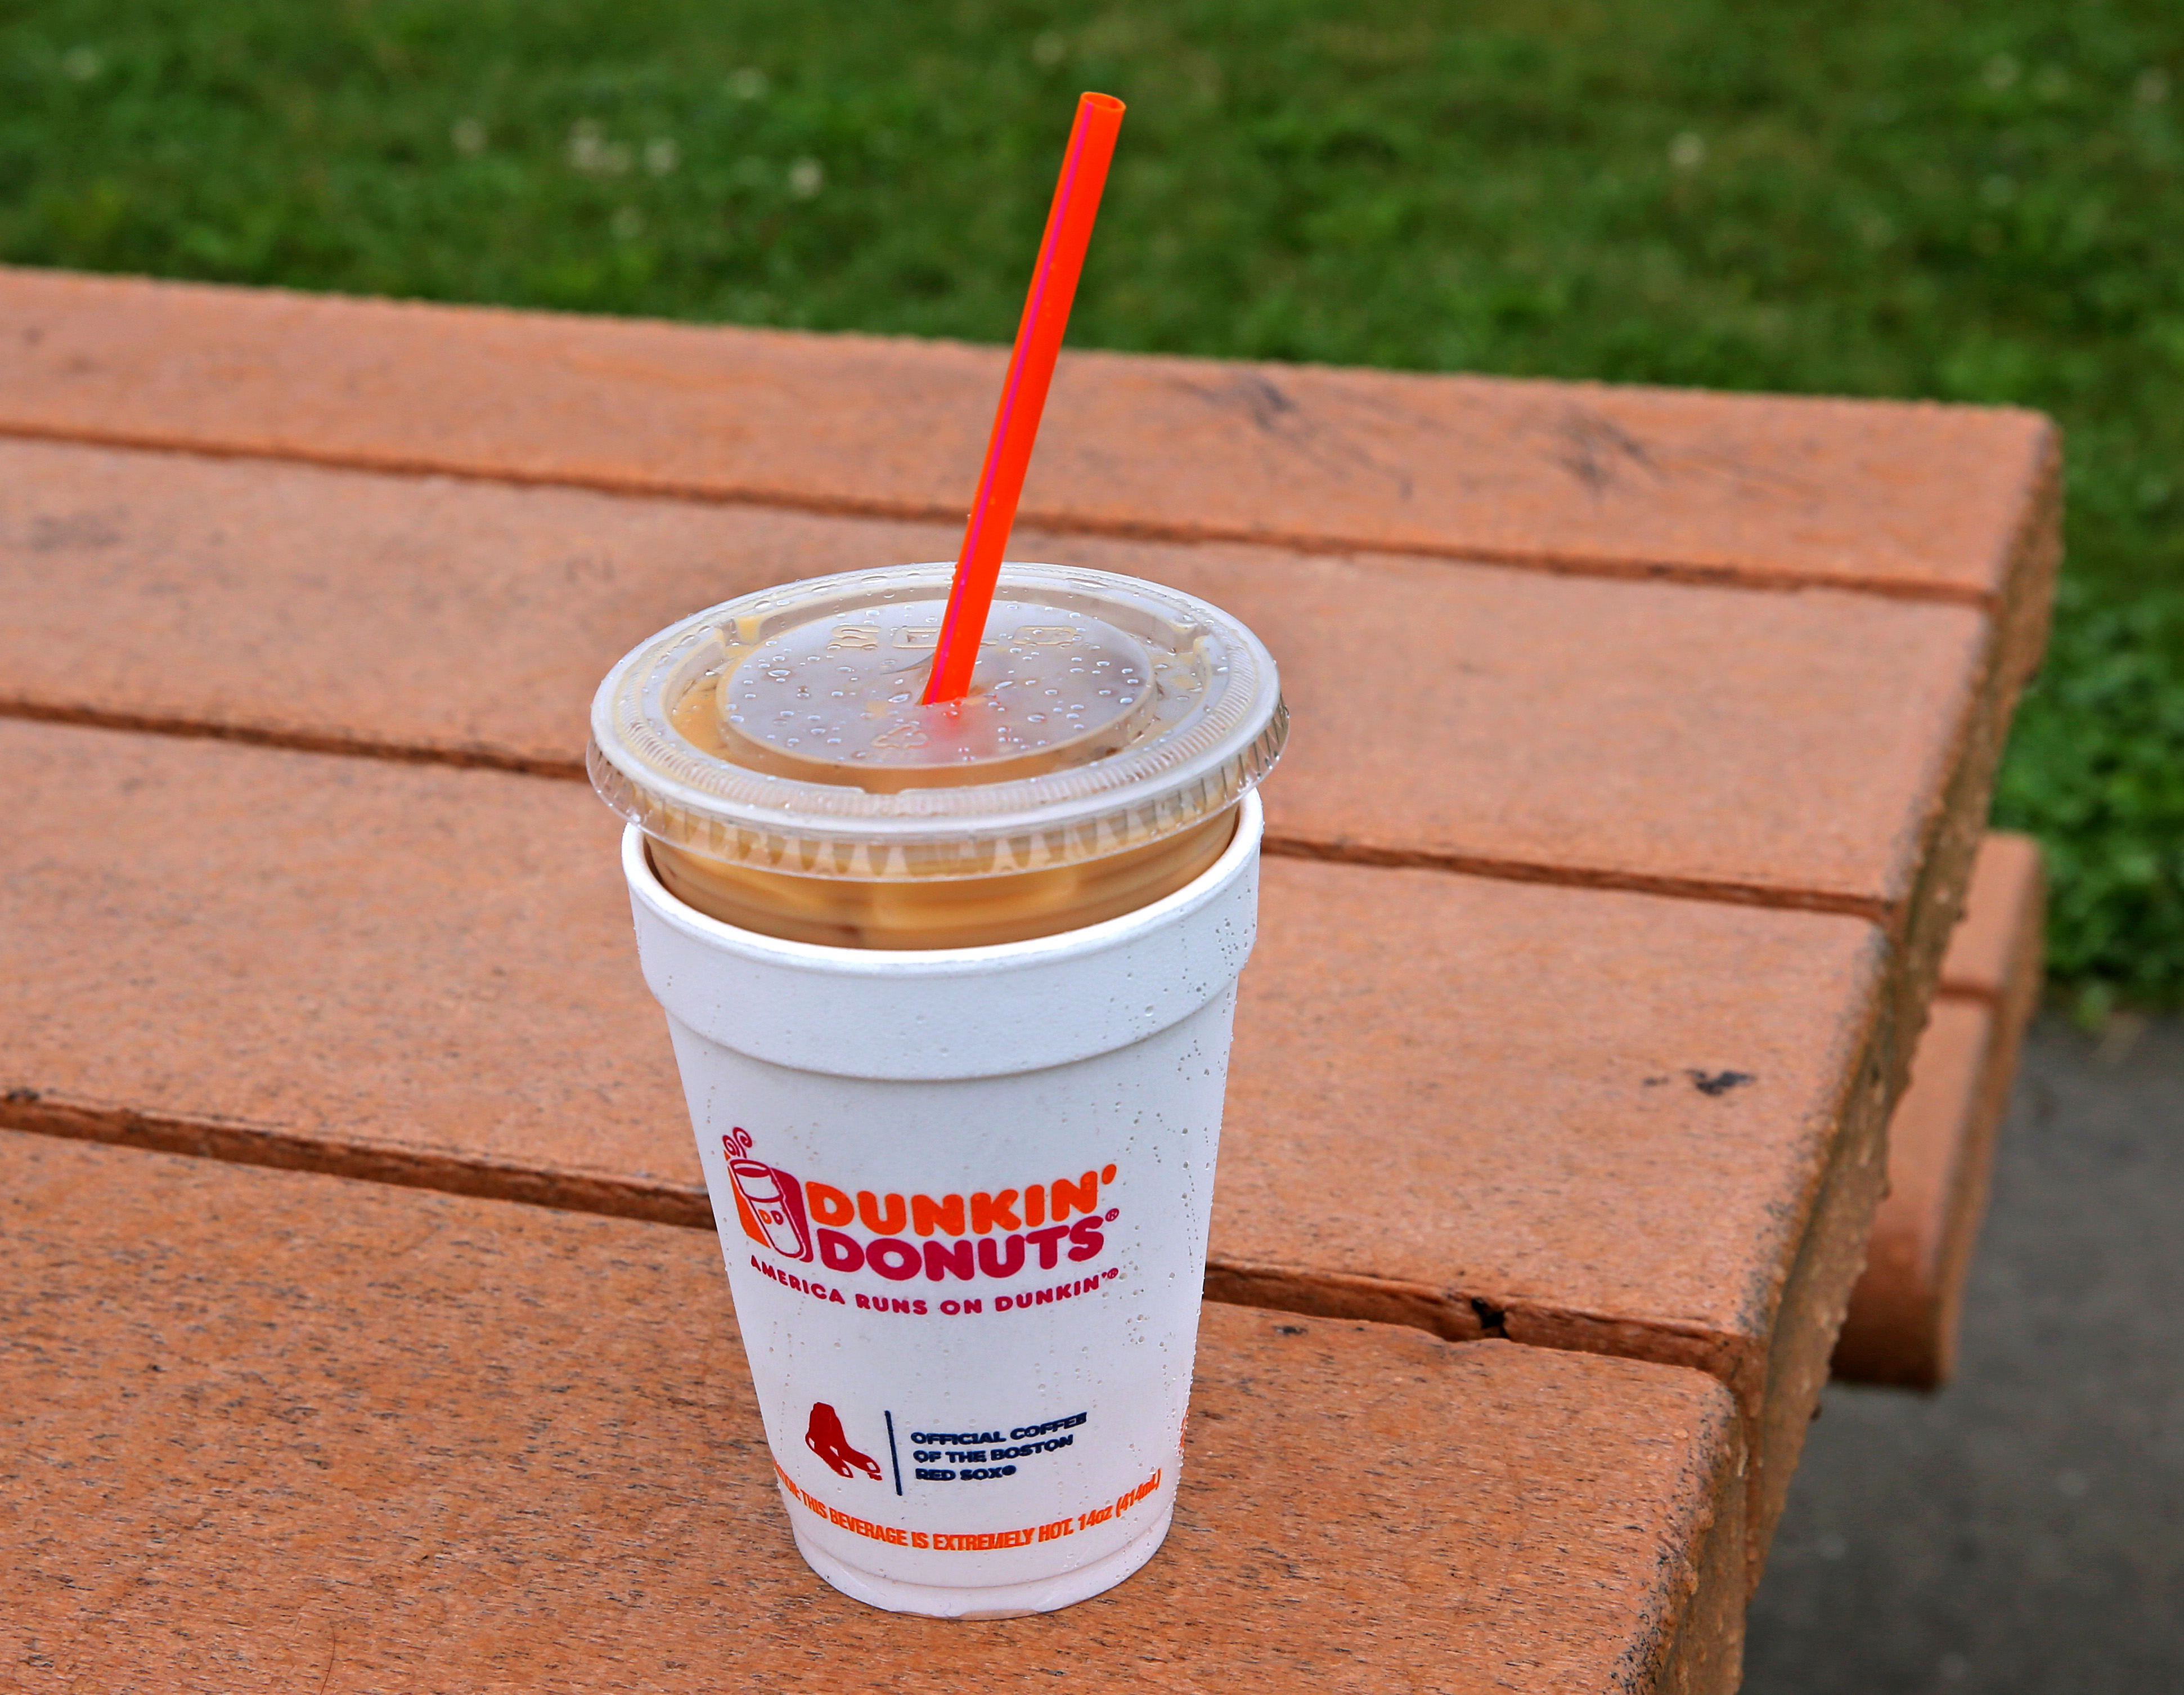 dc267f9e548 Someone complained about Dunkin' Donuts hot cups on Facebook and a war  broke out